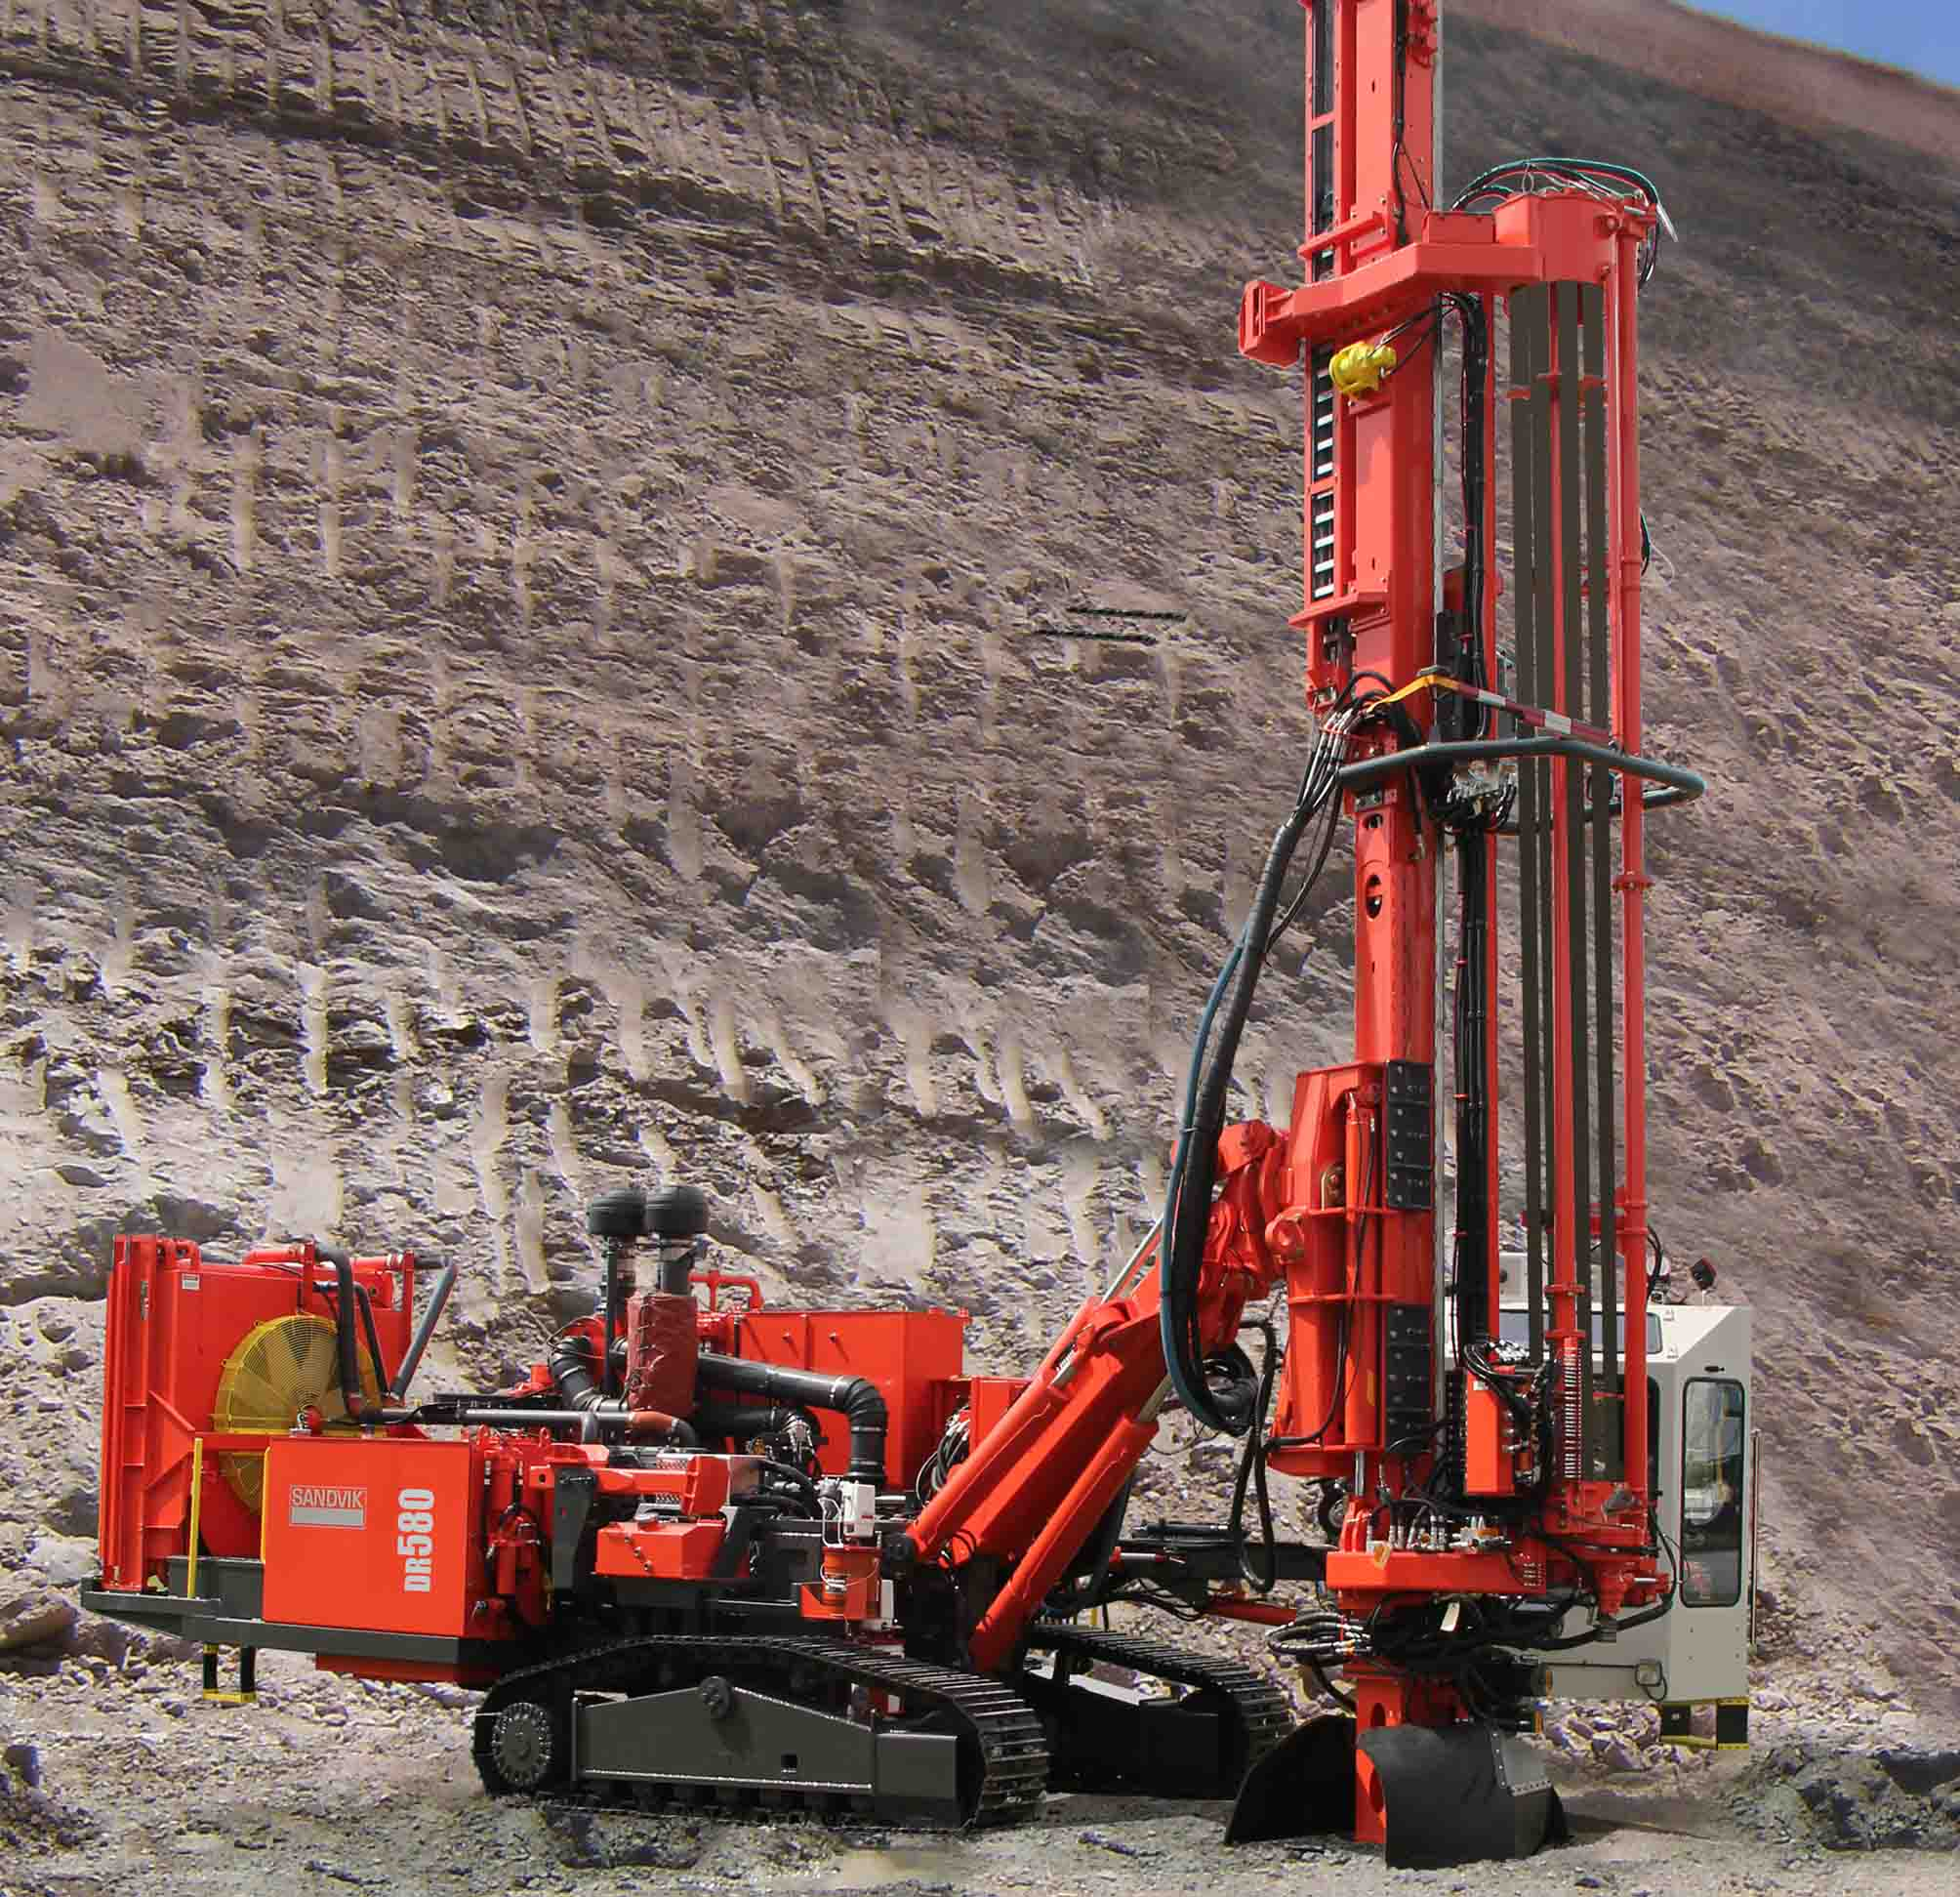 DR580 Surface DTH drill rig SANDVIK MINING [Ground